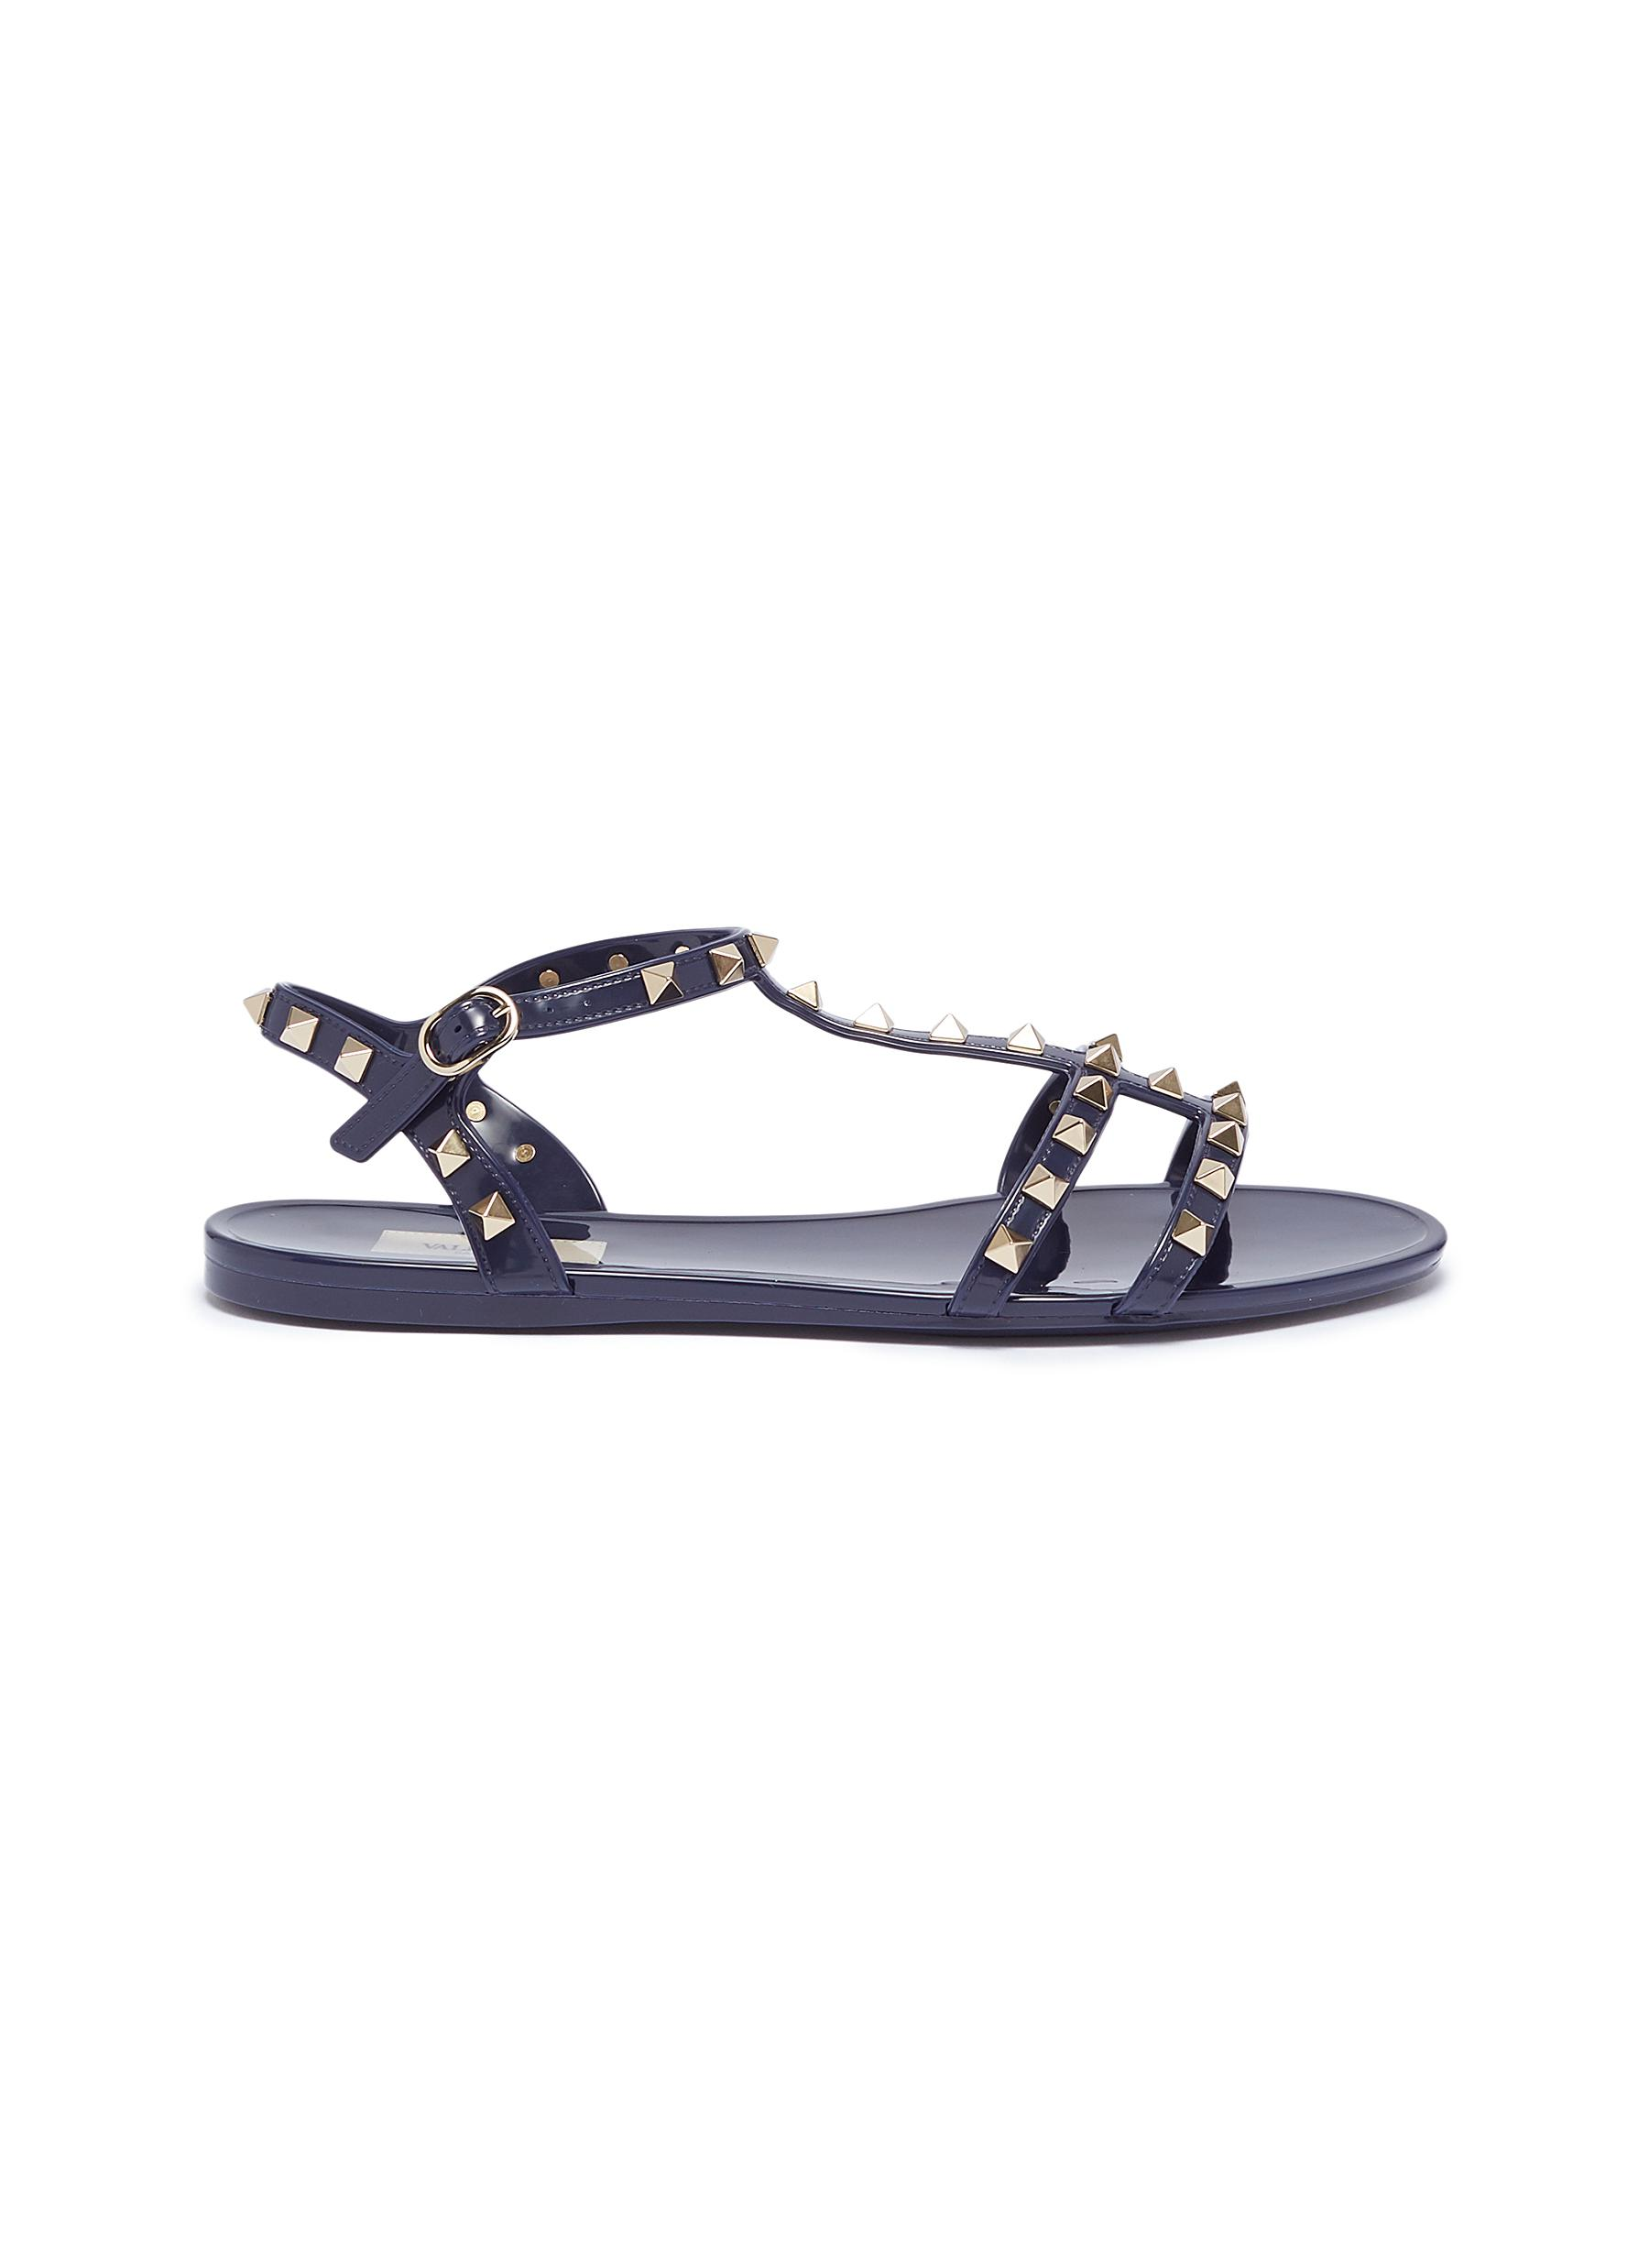 Rockstud caged PVC sandals by Valentino